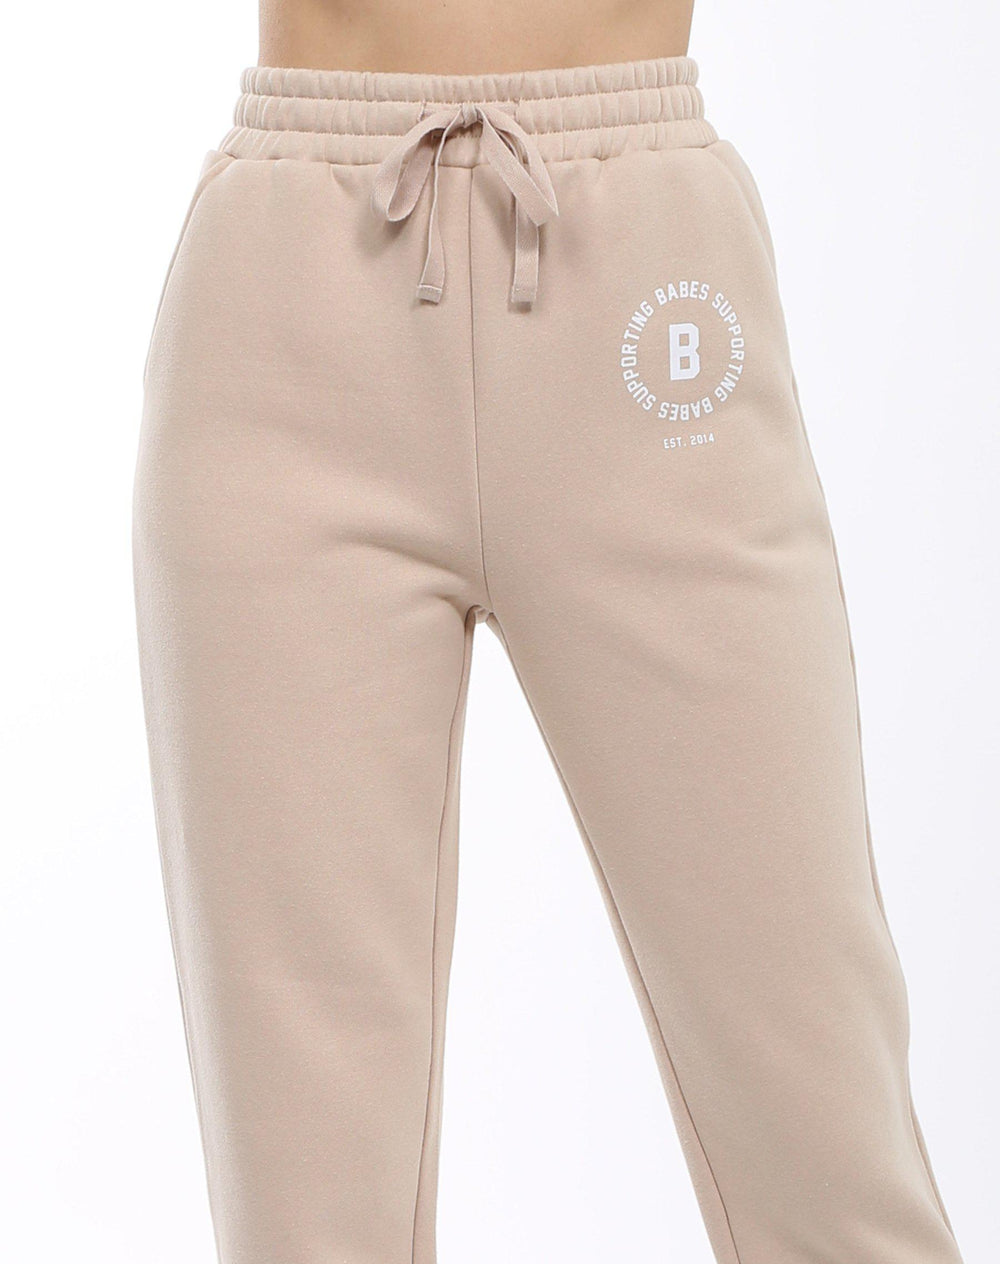 Brunette The Label Babes Supporting Babes Little Sister Joggers-The Trendy Walrus